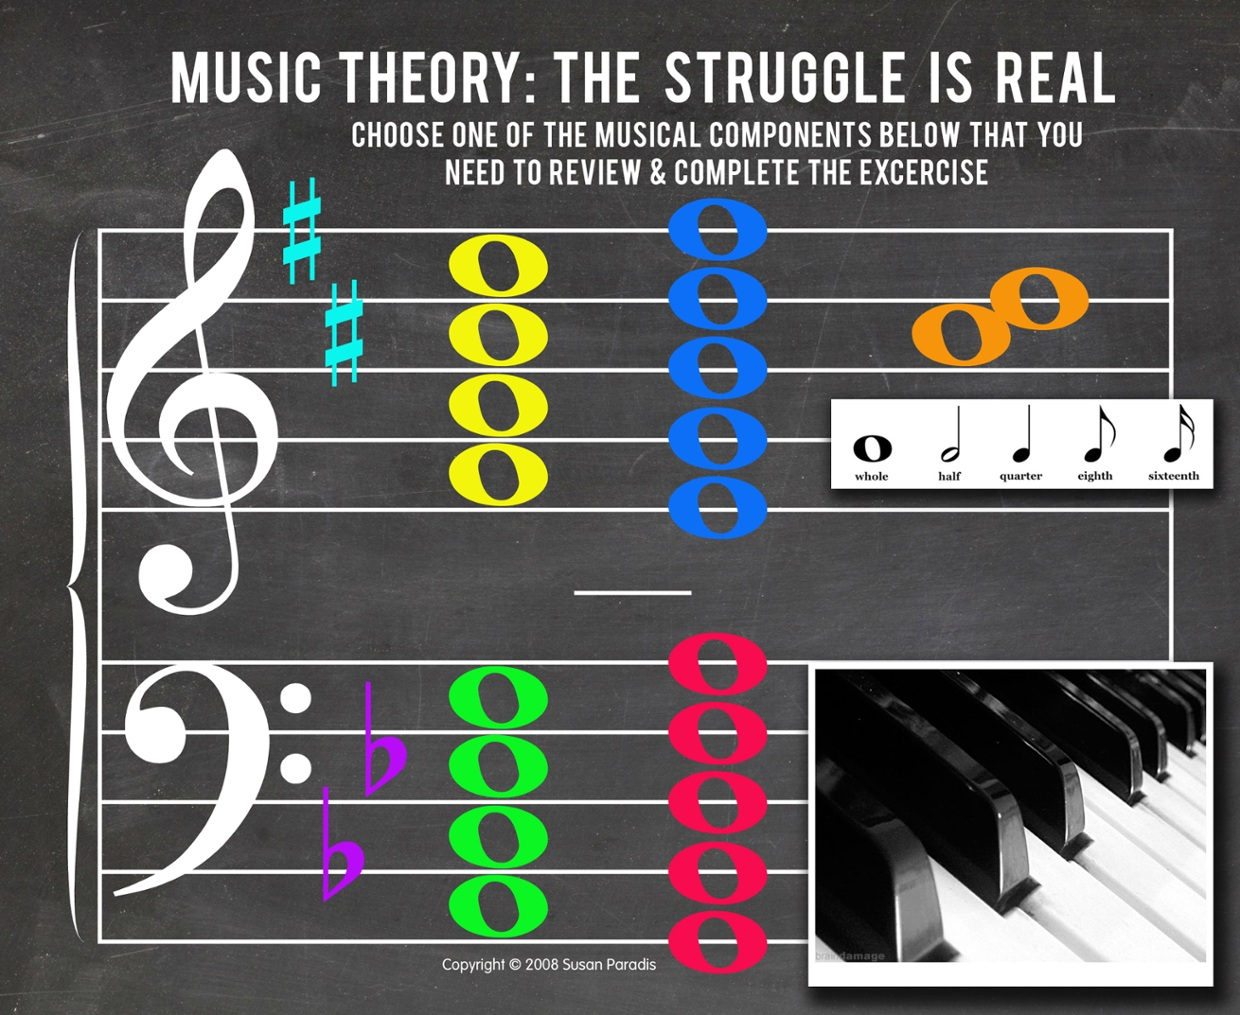 Music Theory Review: The Struggle is Real